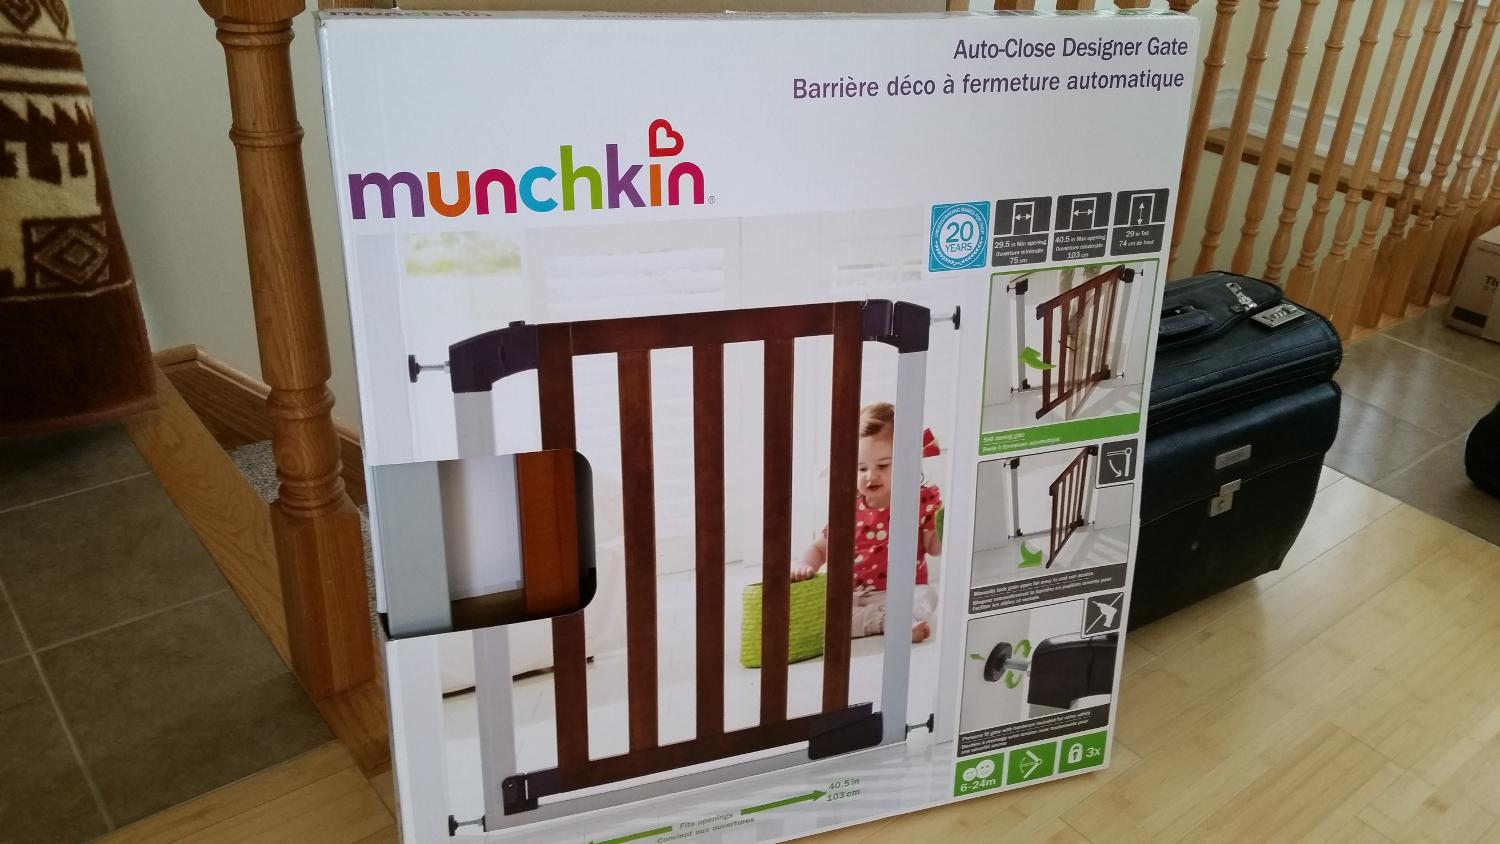 Find More Munchkin Auto Close Designer Gate For Sale At Up To 90 Off